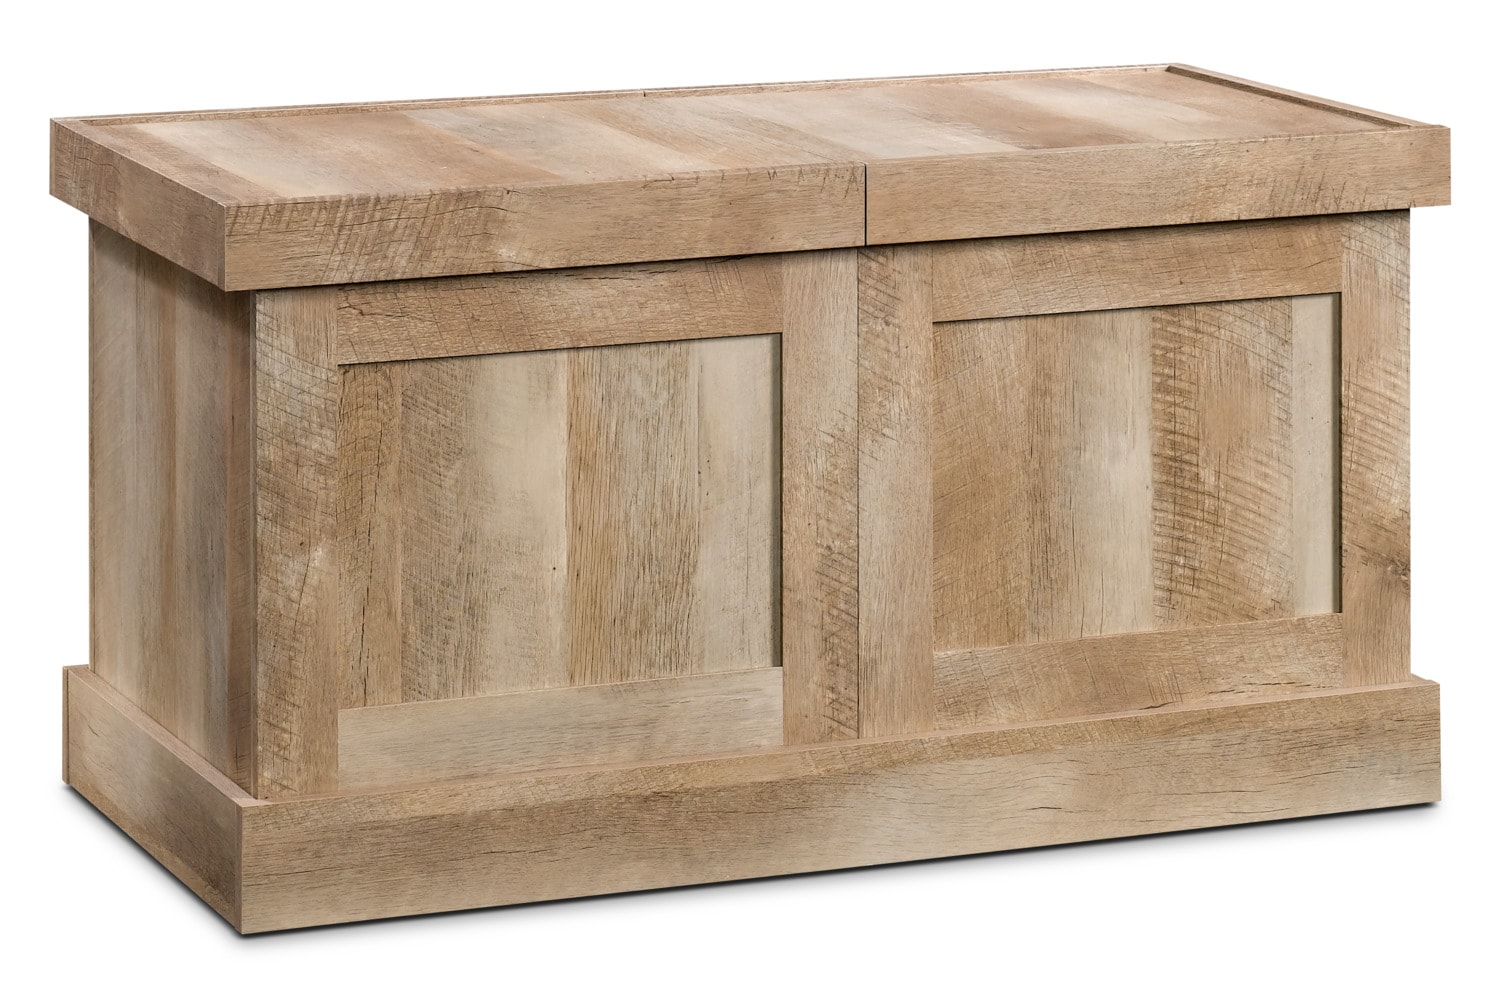 Cannery Bridge Crate Coffee Table The Brick